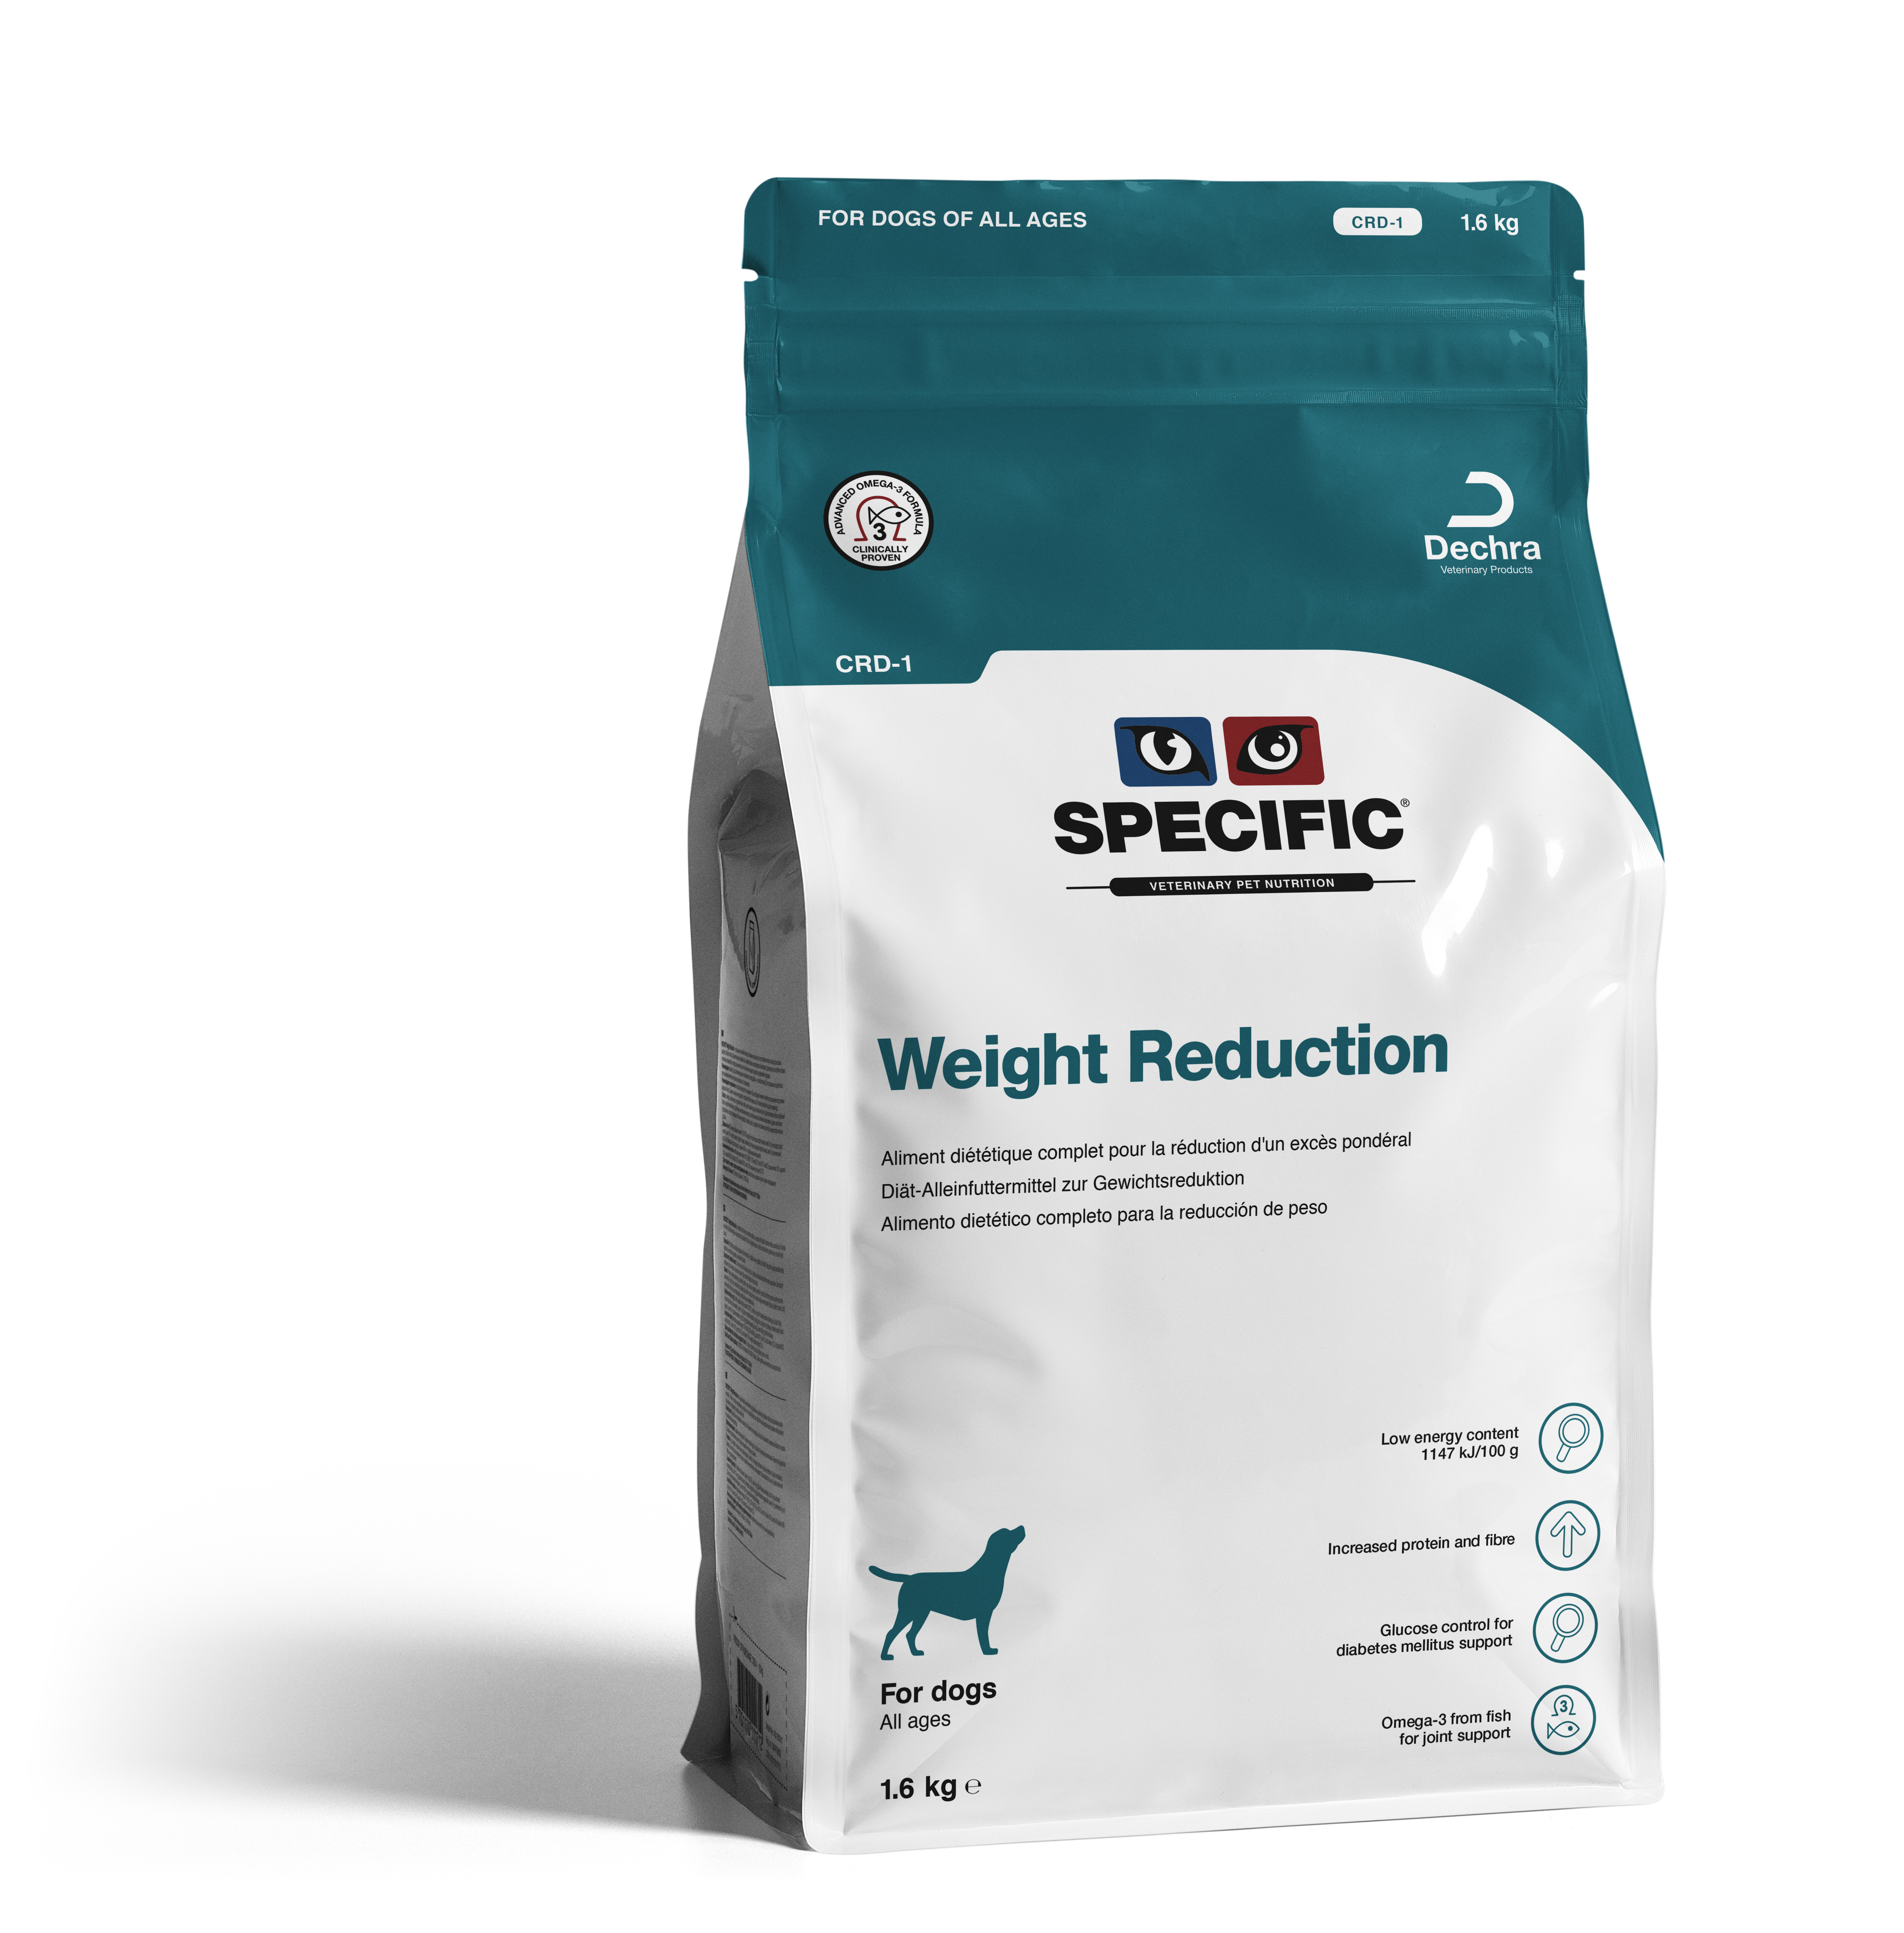 Specific Weight Reduction Crd-1 Dog